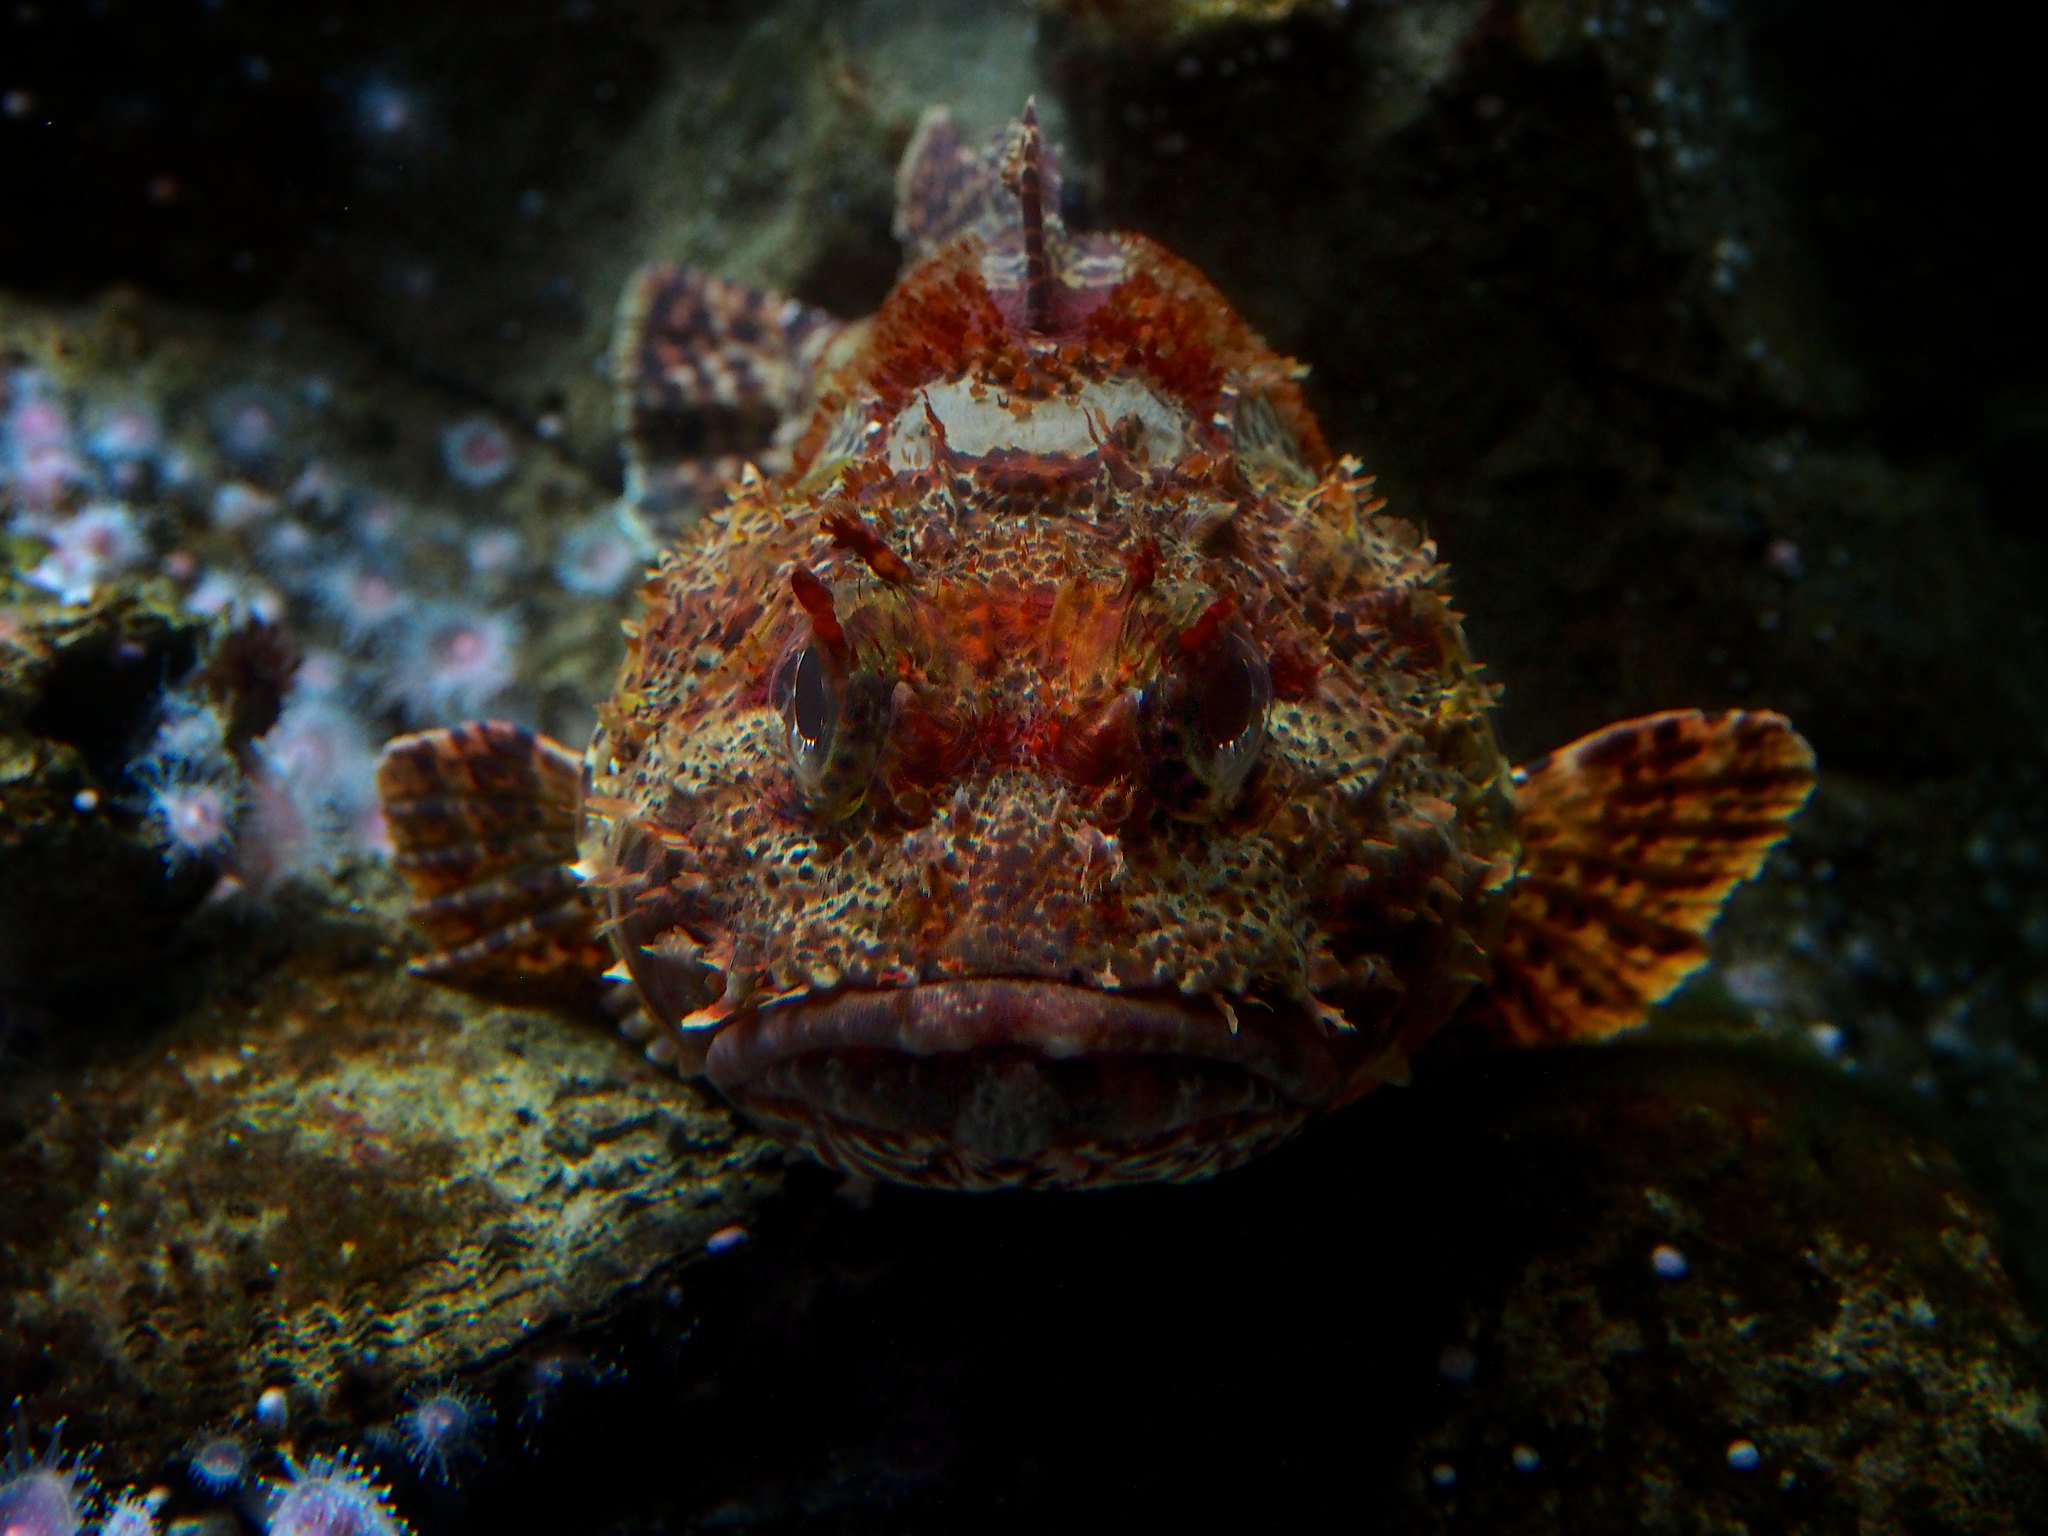 scorpionfish resting on substrate